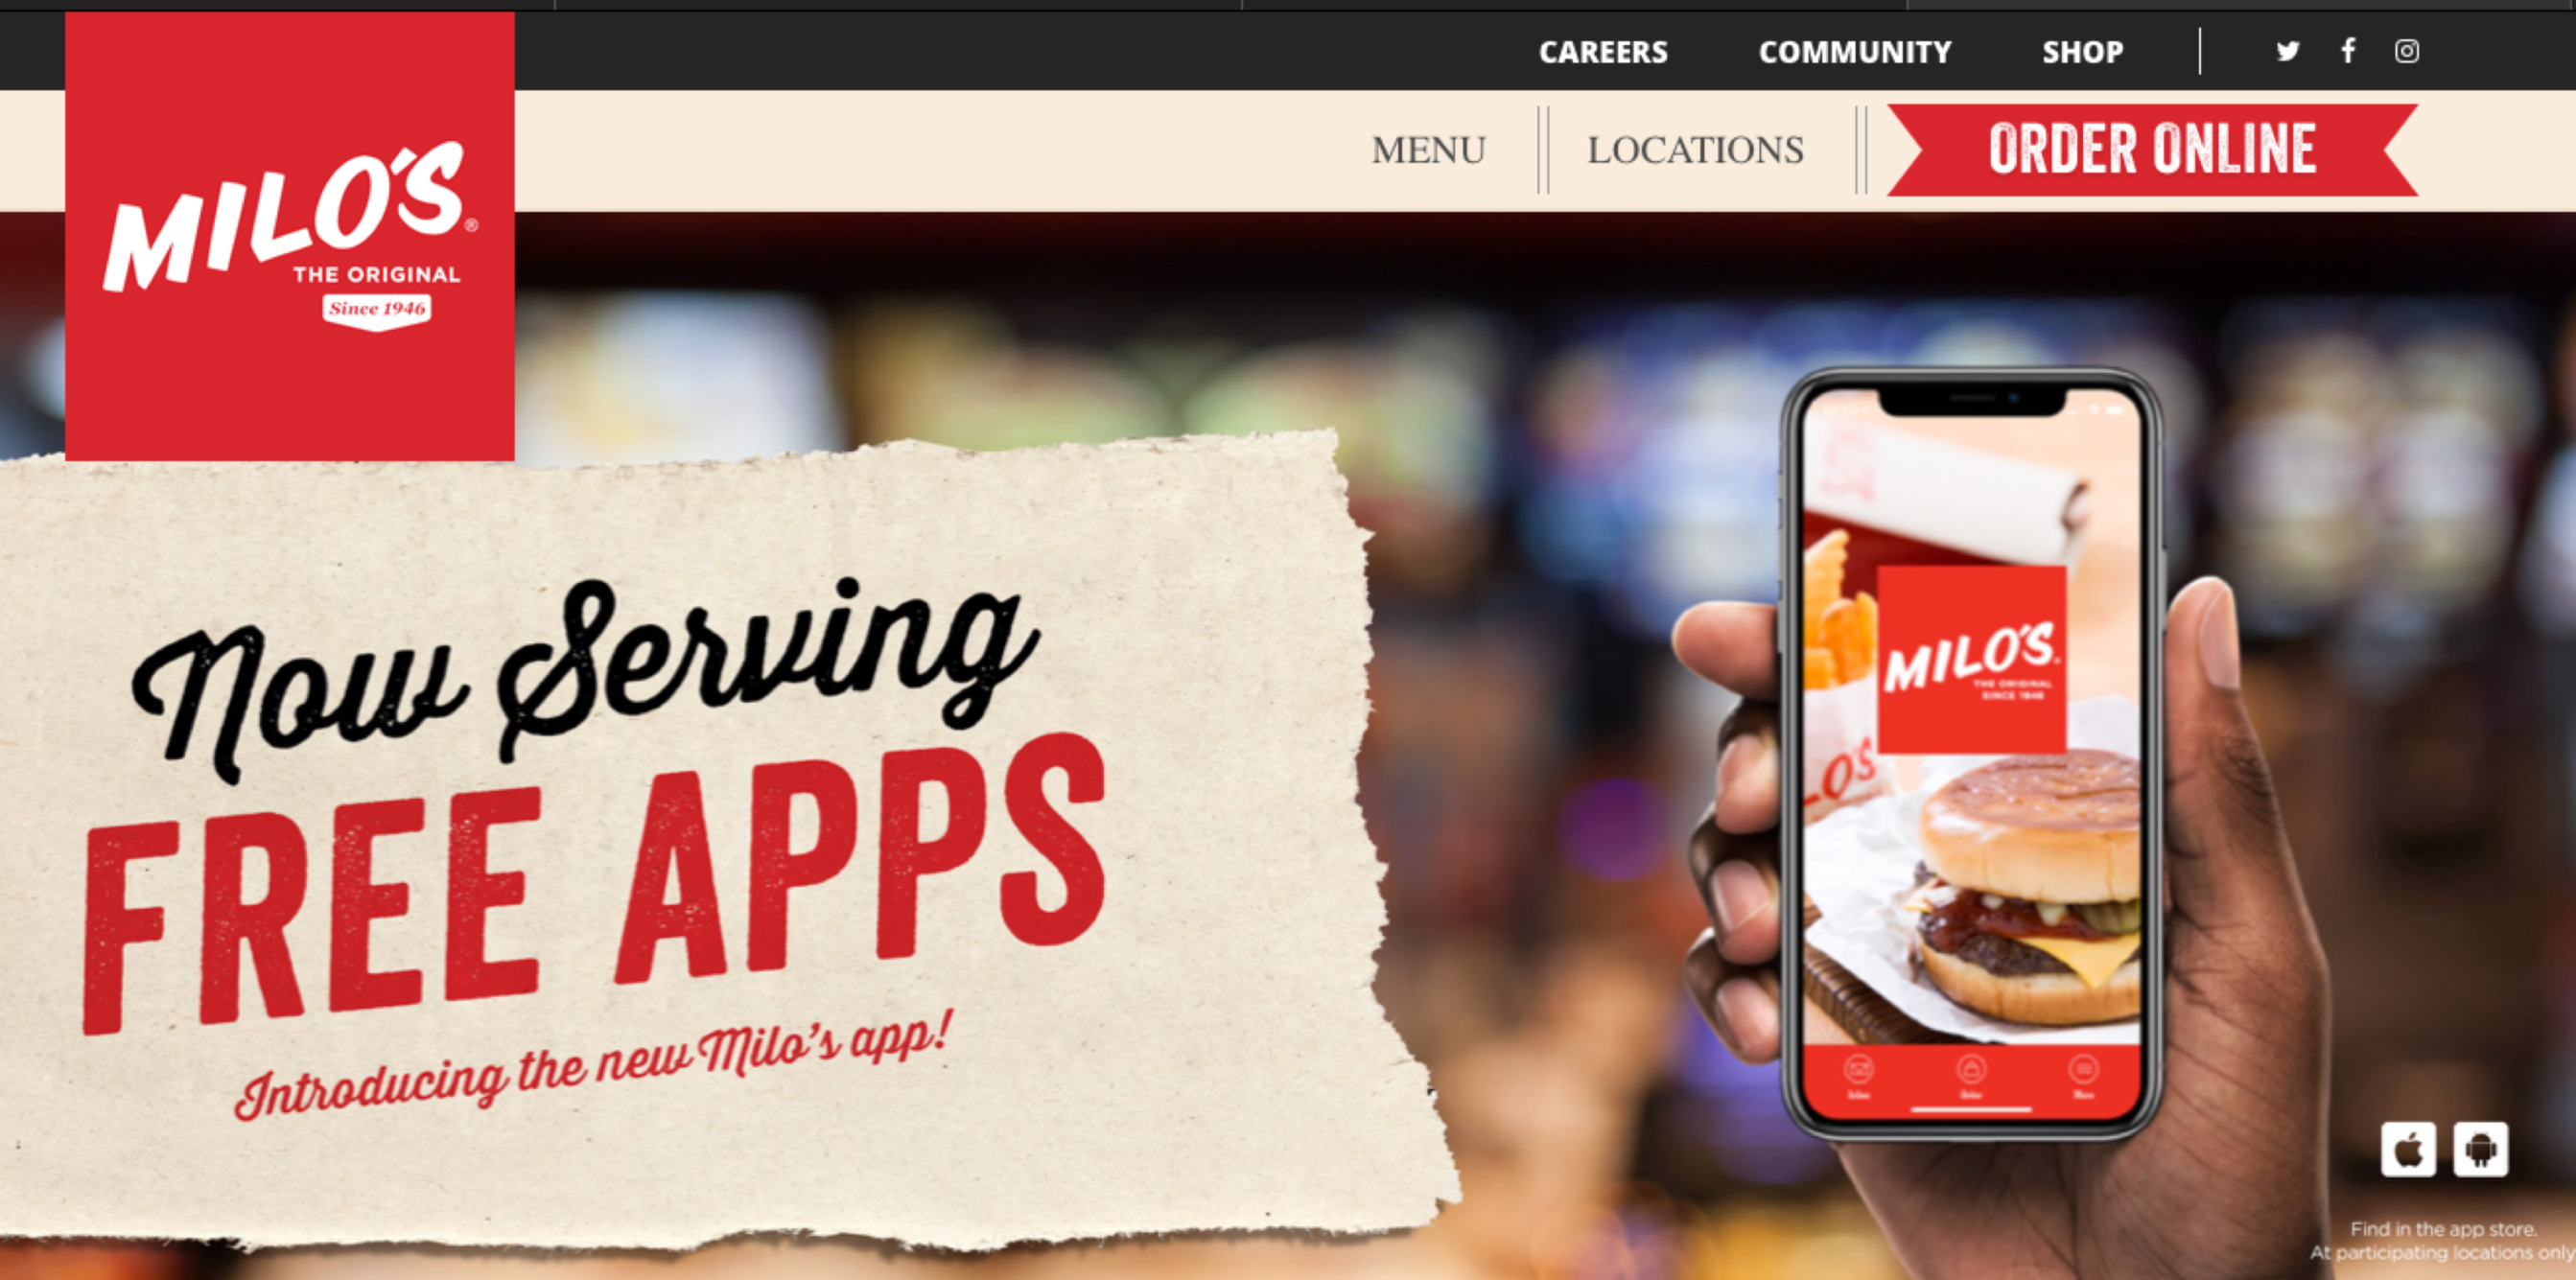 Integration with NCC POS & Launch of Mobile App & Online Ordering for Milos